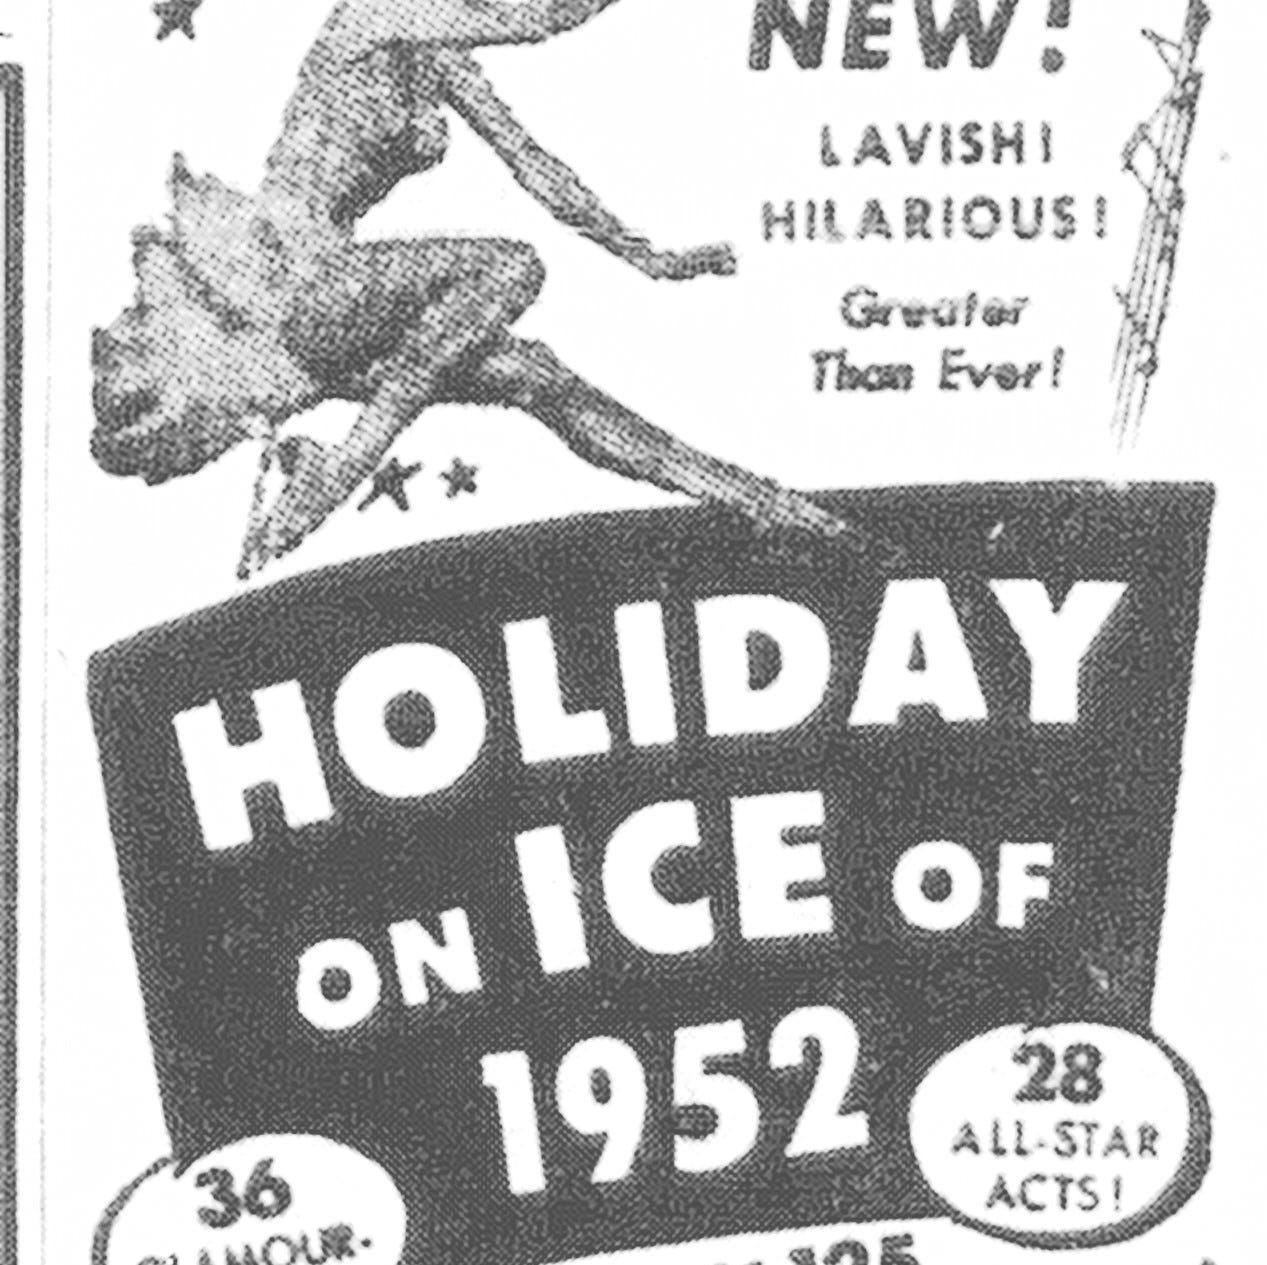 This ad ran in the October 3, 1951 Lancaster Eagle-Gazette.